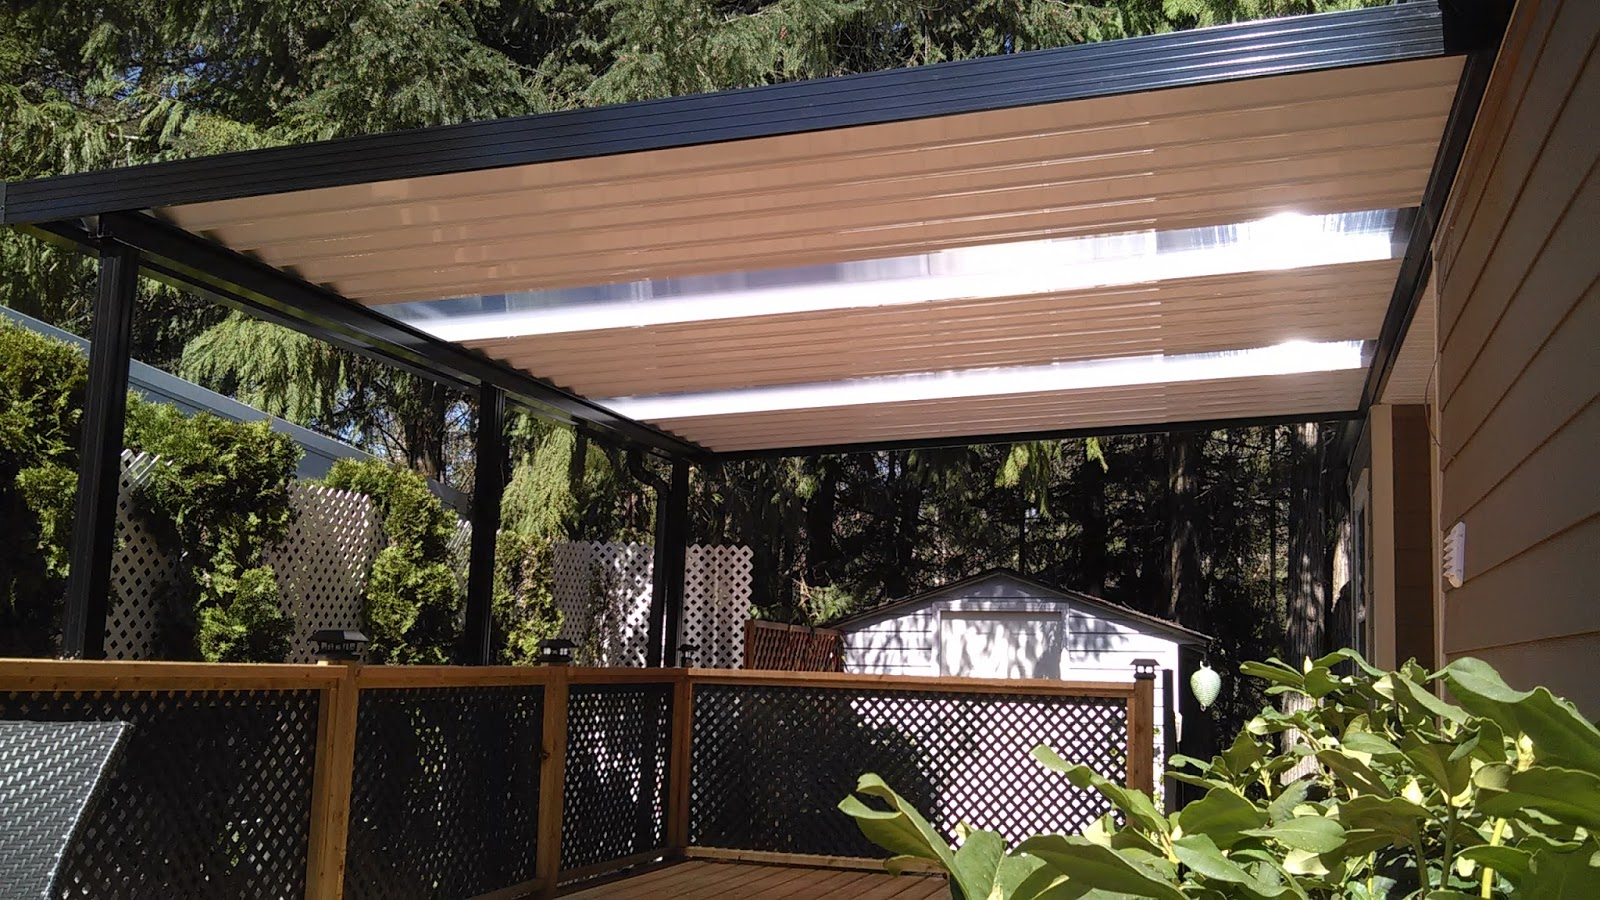 Awnings and Patio Covers: Summer Heat: Patio Cover